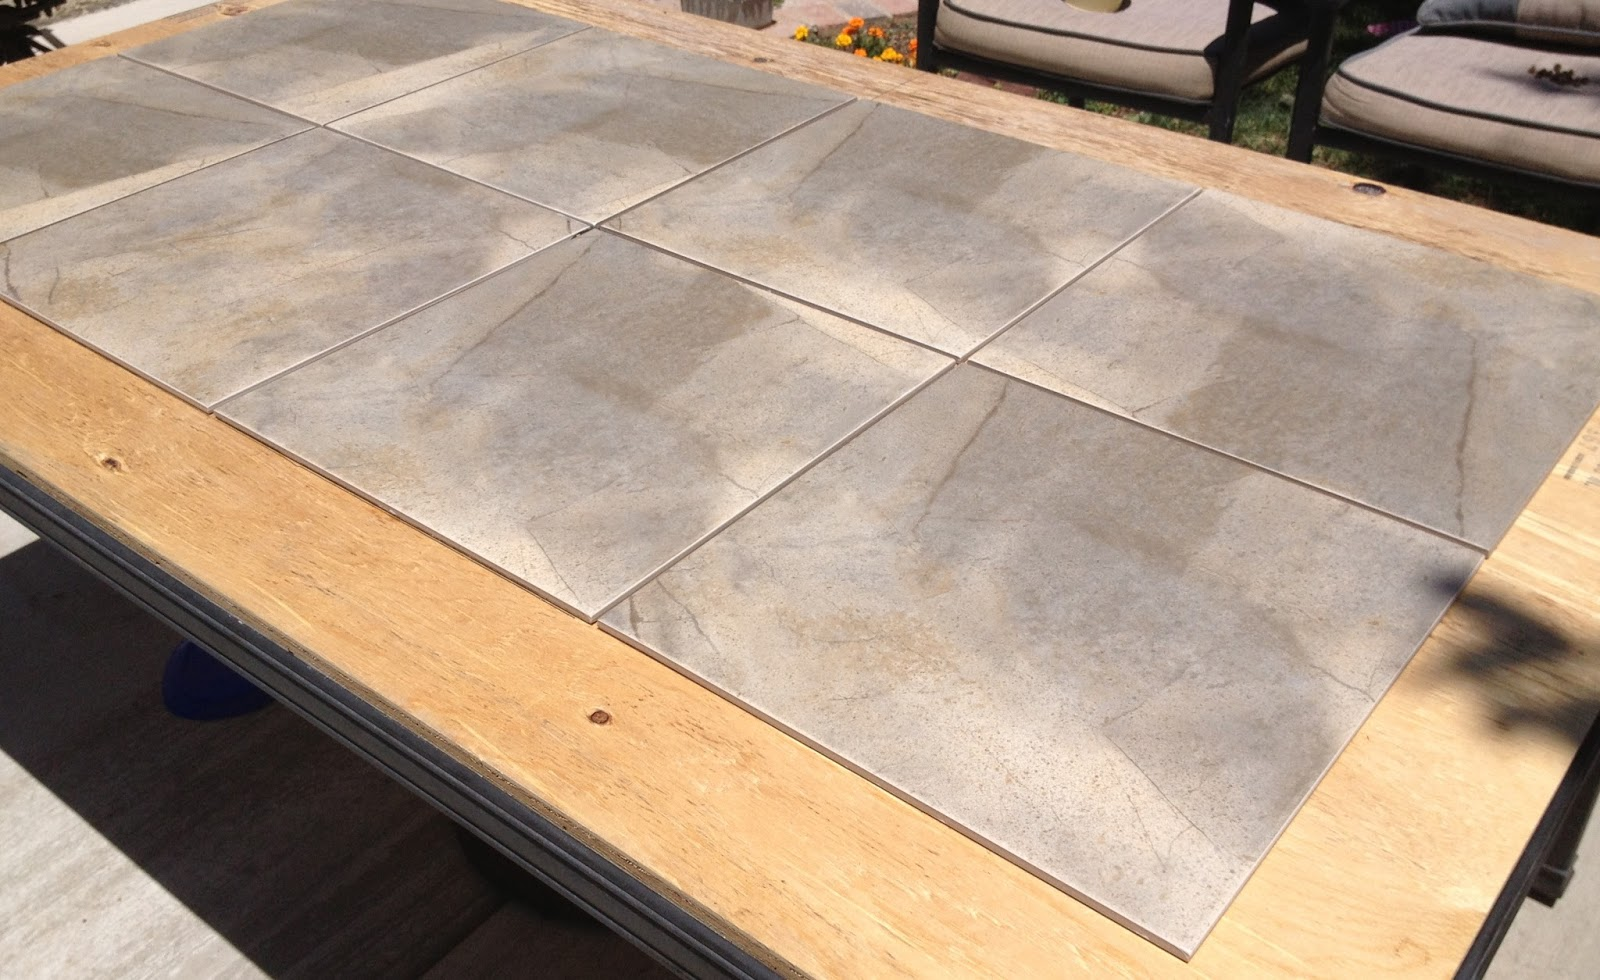 Beyond the Craft Room: DIY Tiled Patio Table